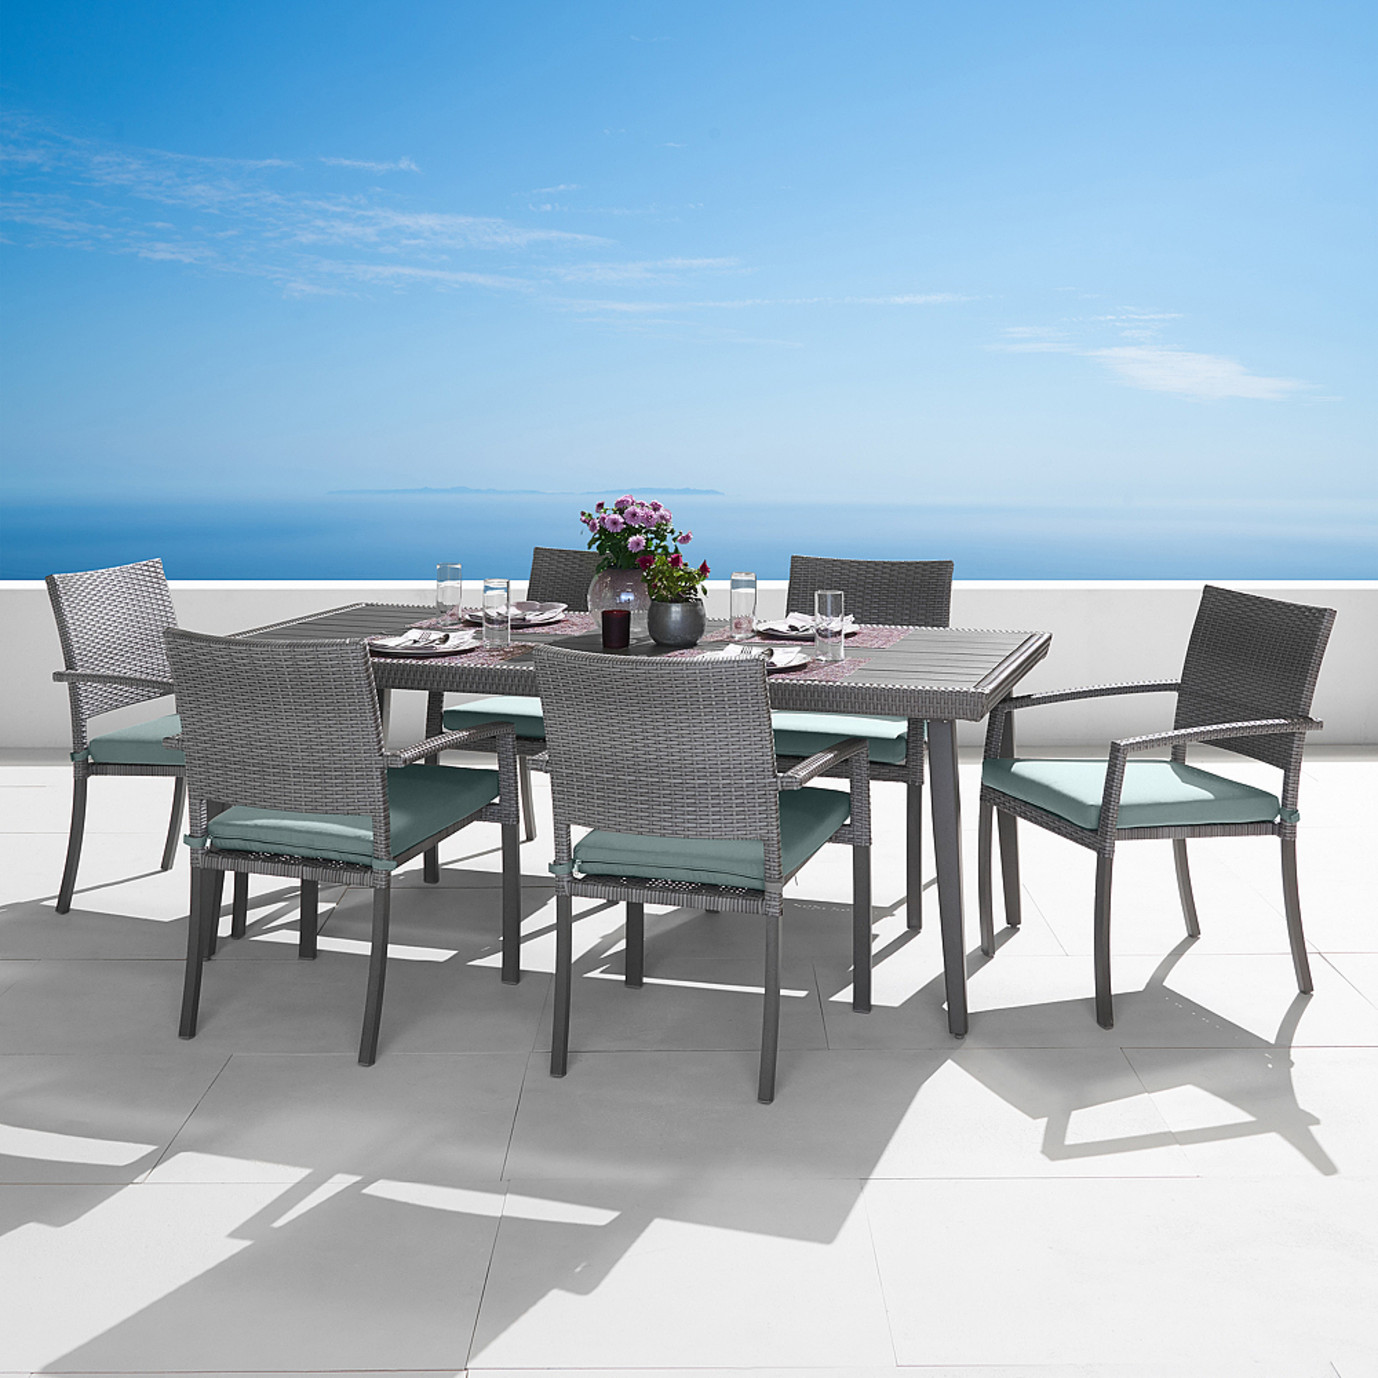 Portofino® Casual 7pc Dining Set - Spa Blue